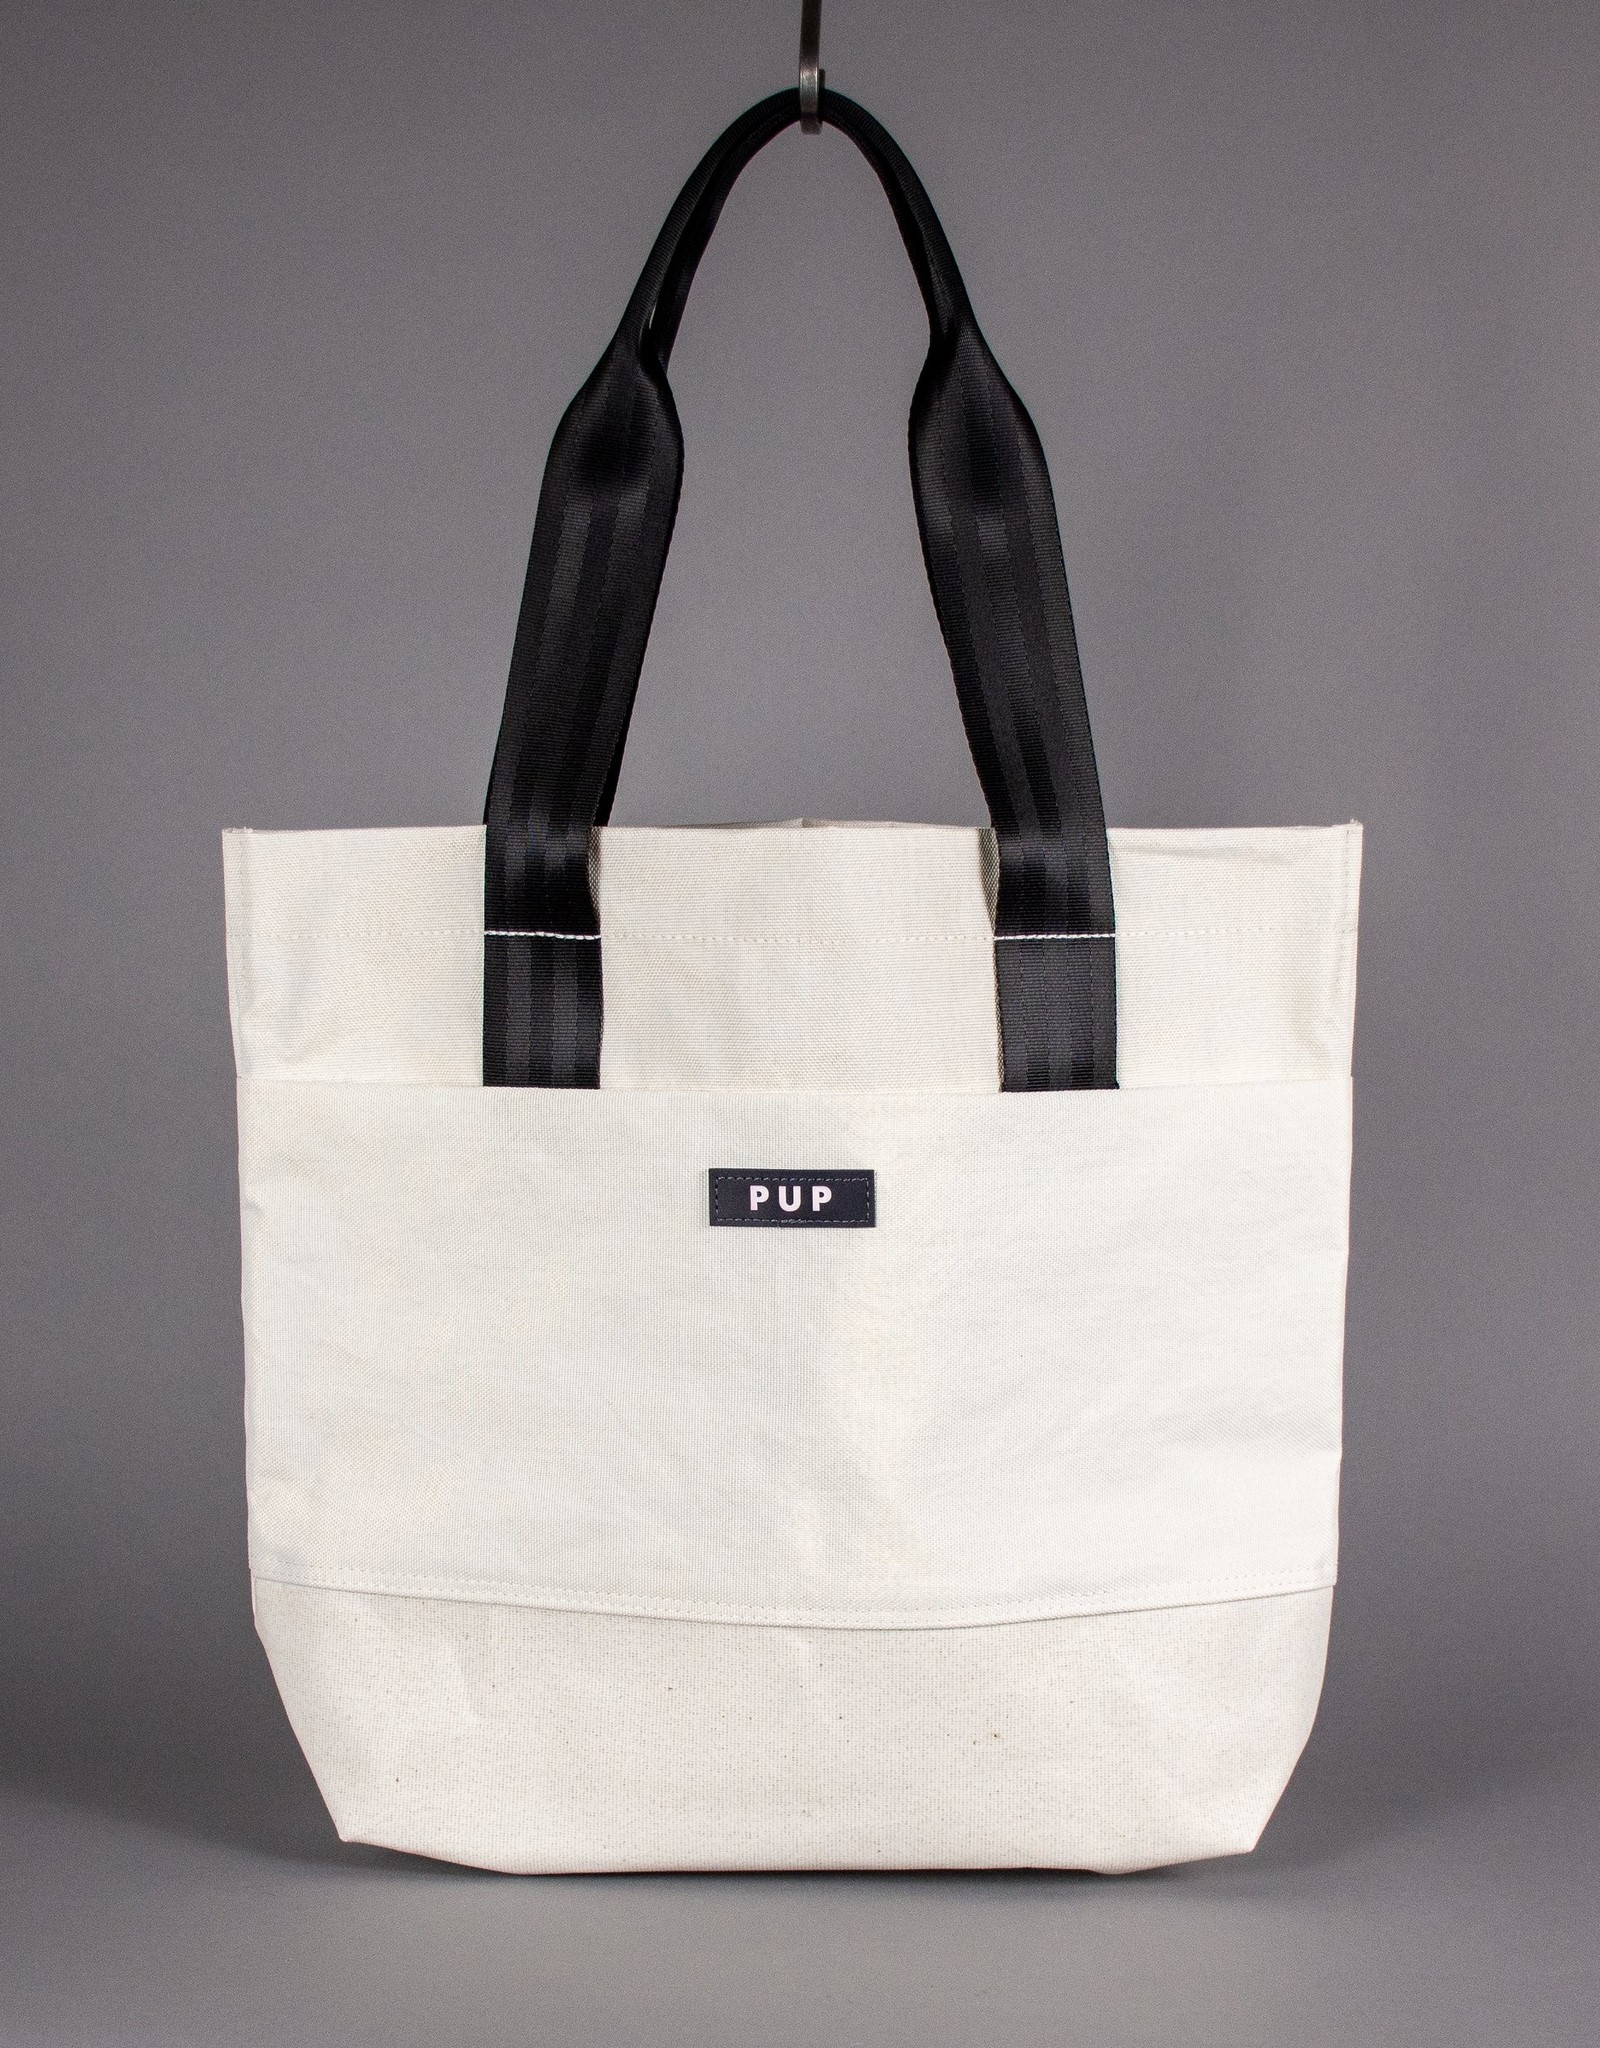 PUP Archivist Tote Made From The Roof Of The RCA Dome